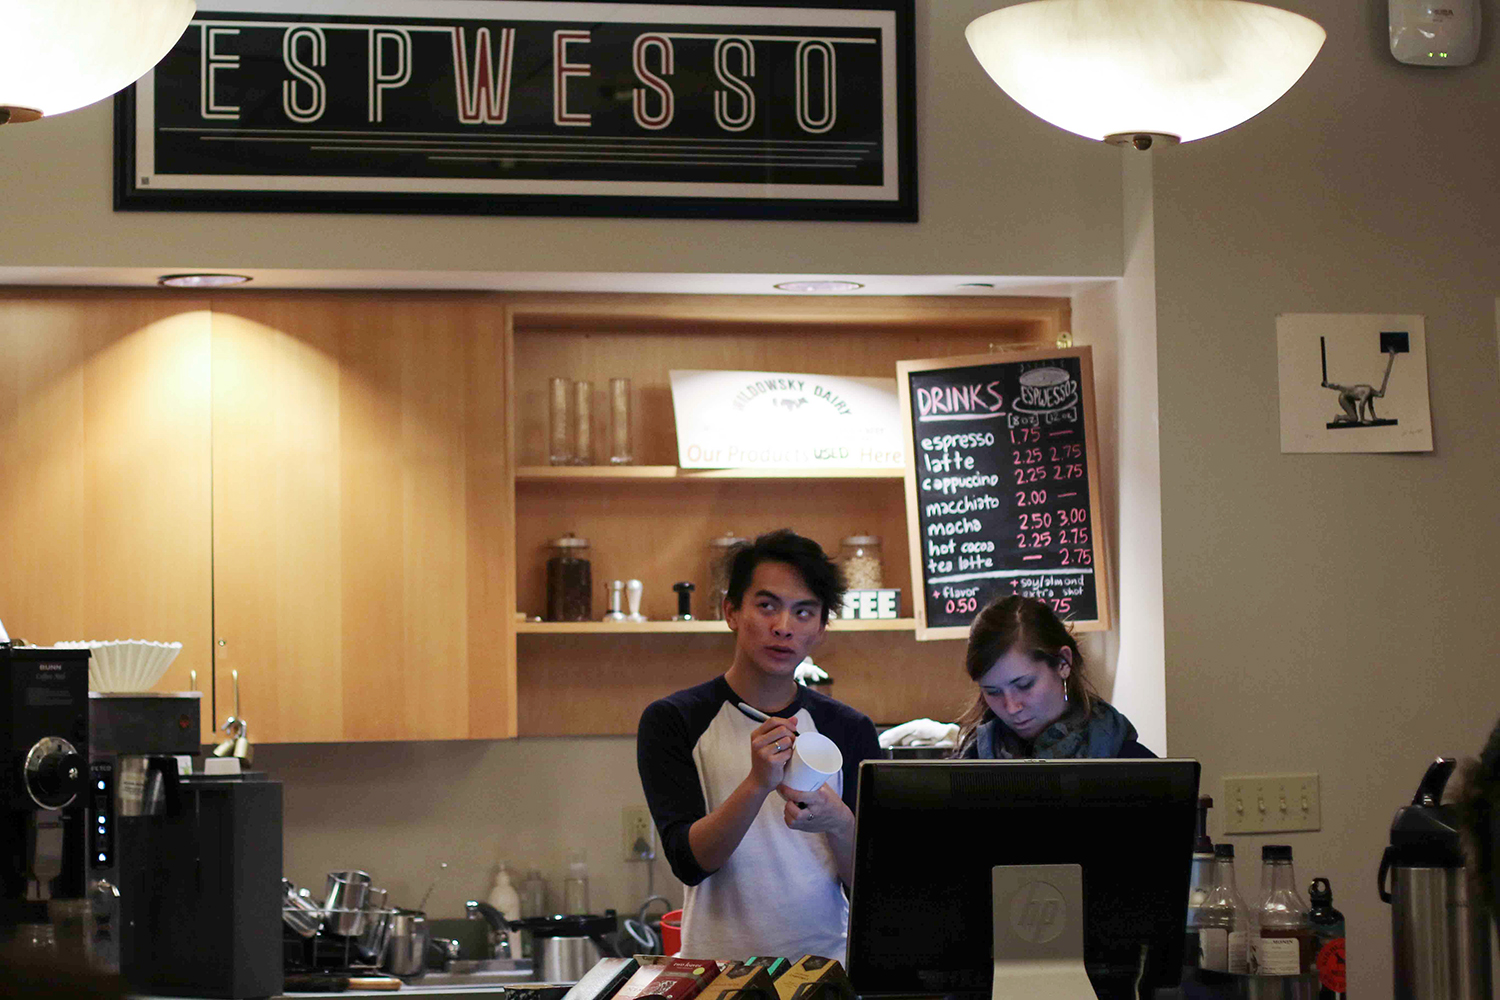 Emily Pfoutz '16 and Rick Manayan '17 busily make and distribute drinks at Espwesso, Wesleyan's student run cafe.